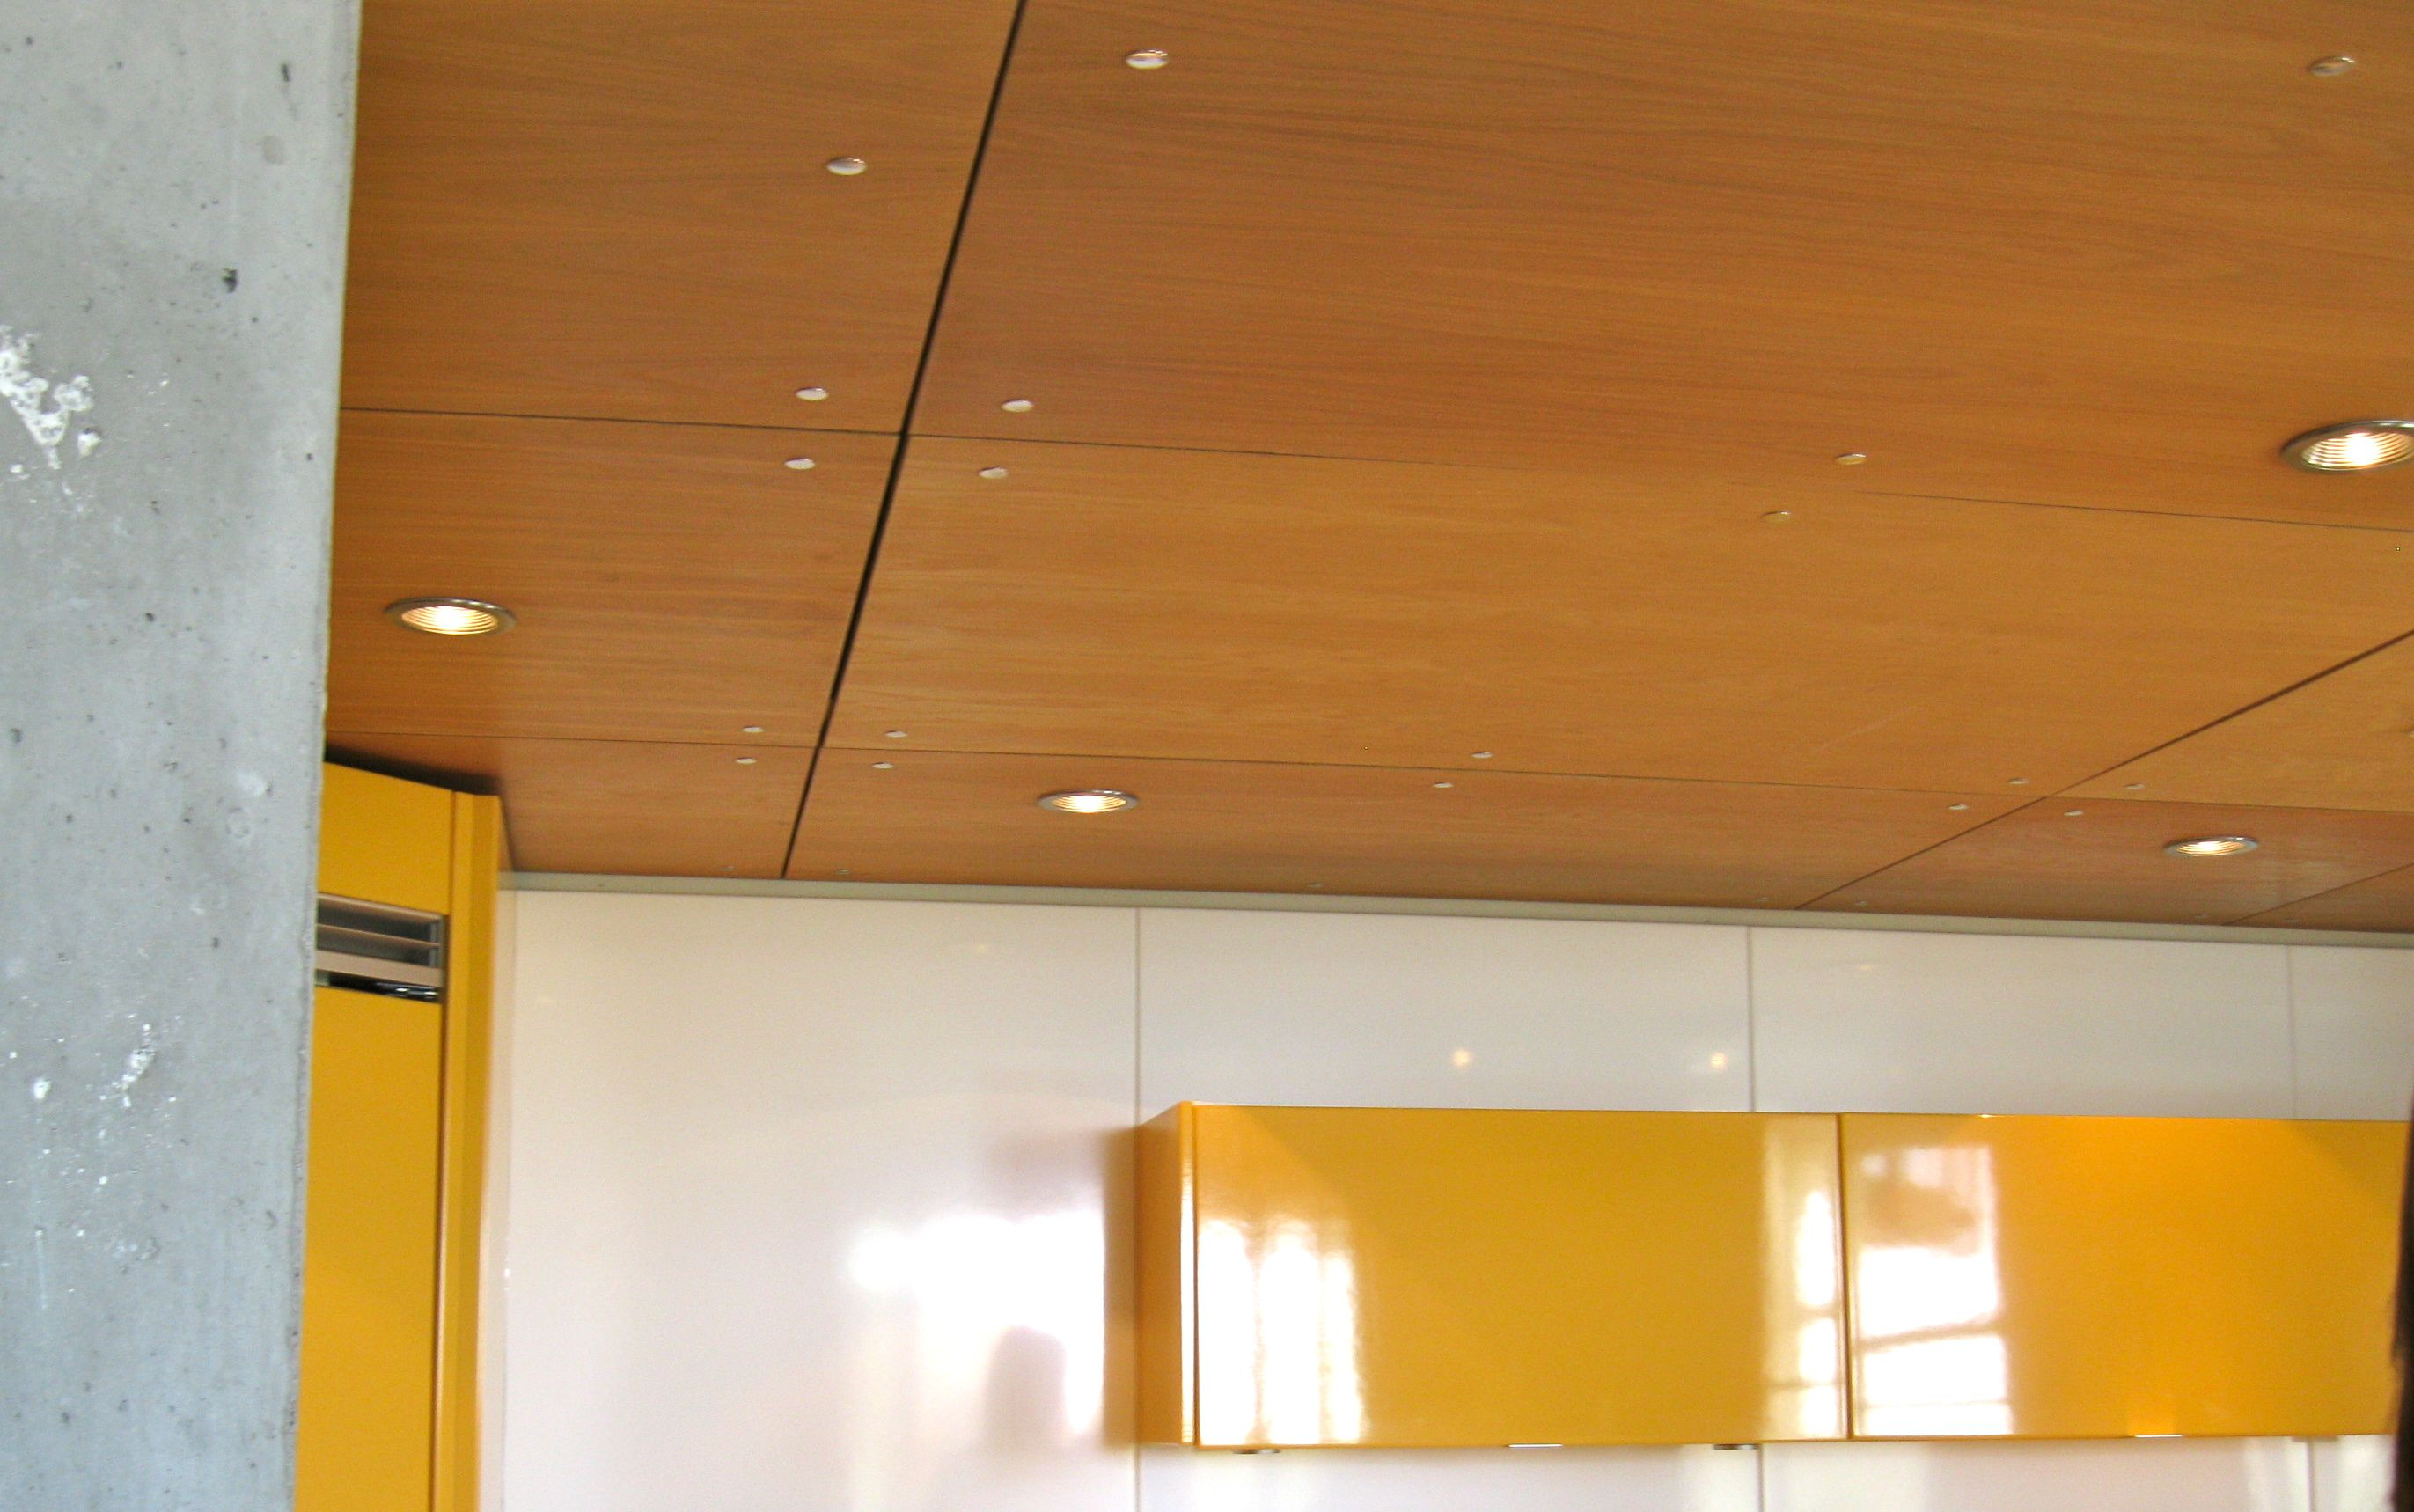 Ceiling Tiles For Kitchen 1960 Style Ceilings Tiles Plywood Ceiling With Stainless Steel